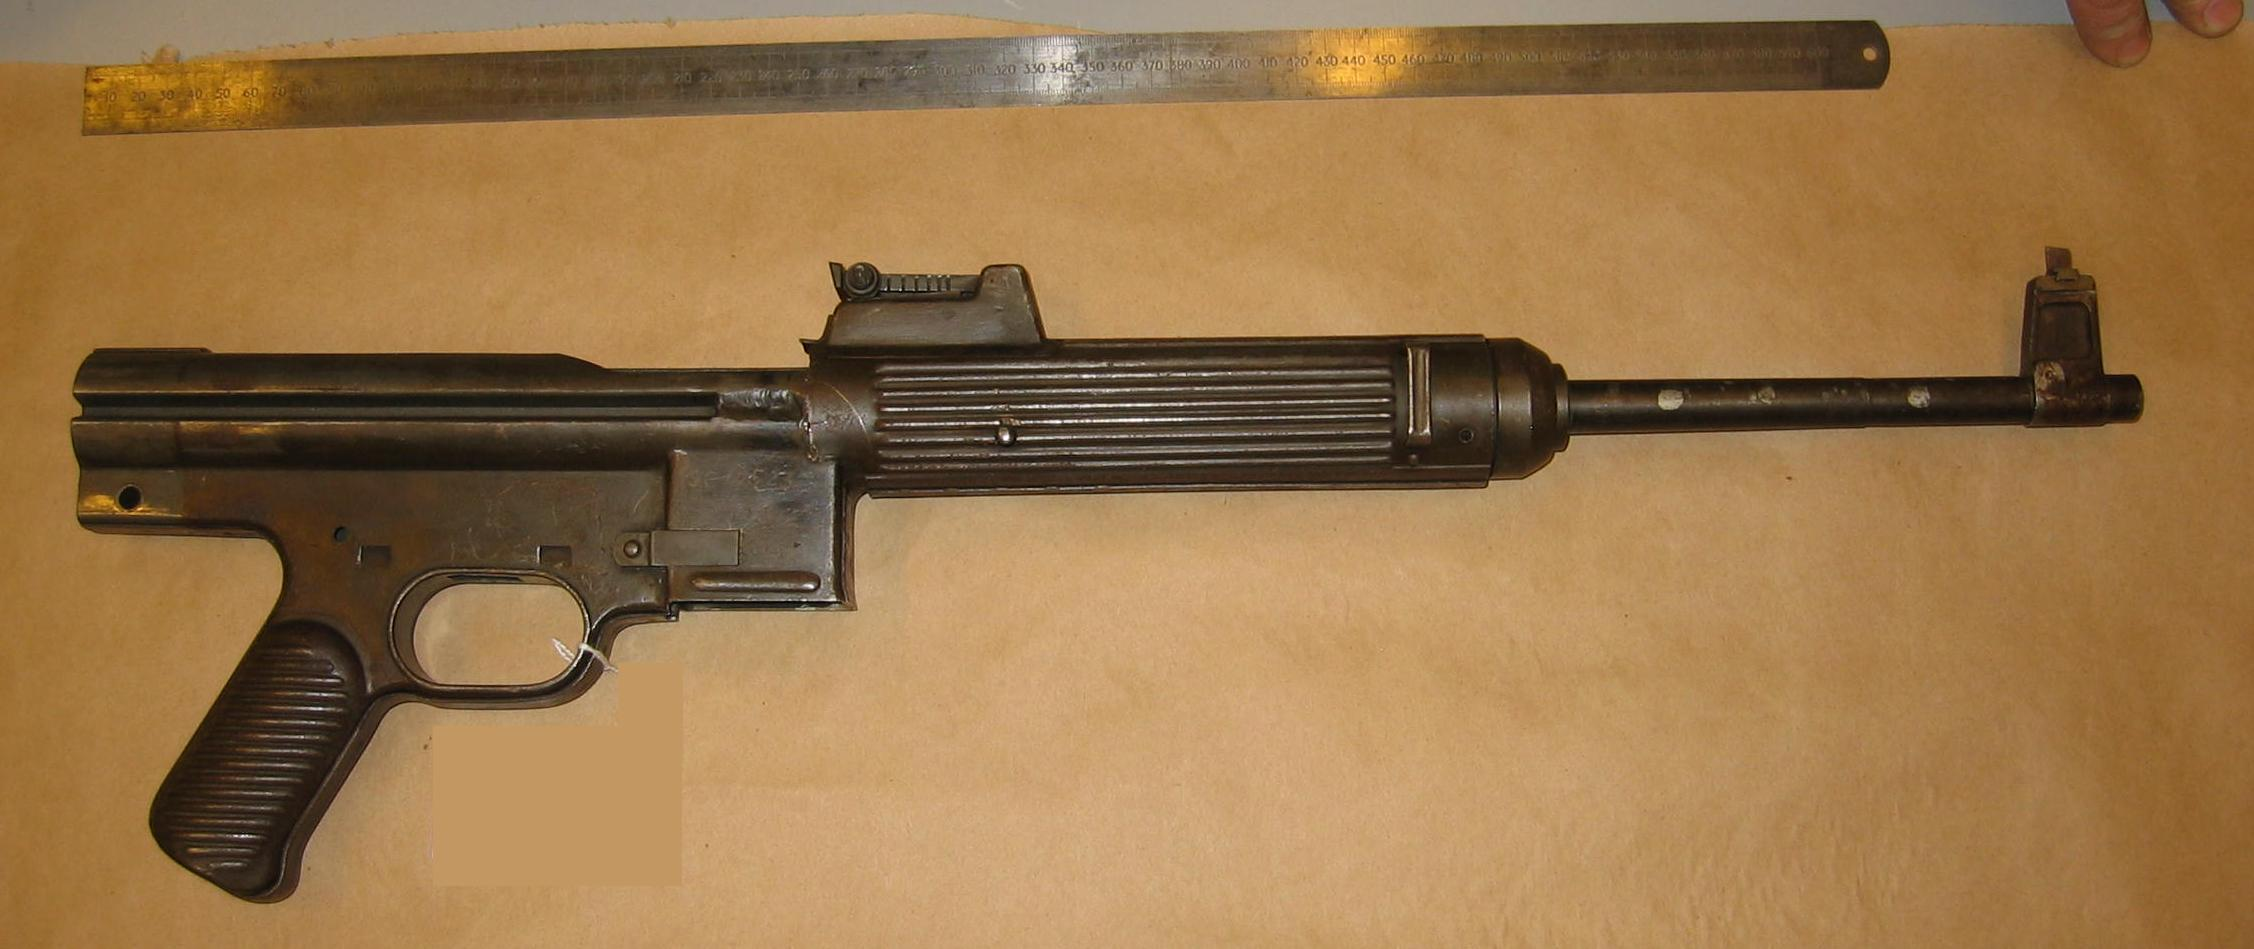 Information about forgottenweapons com forgotten weapons - Information About Forgottenweapons Com Forgotten Weapons 15